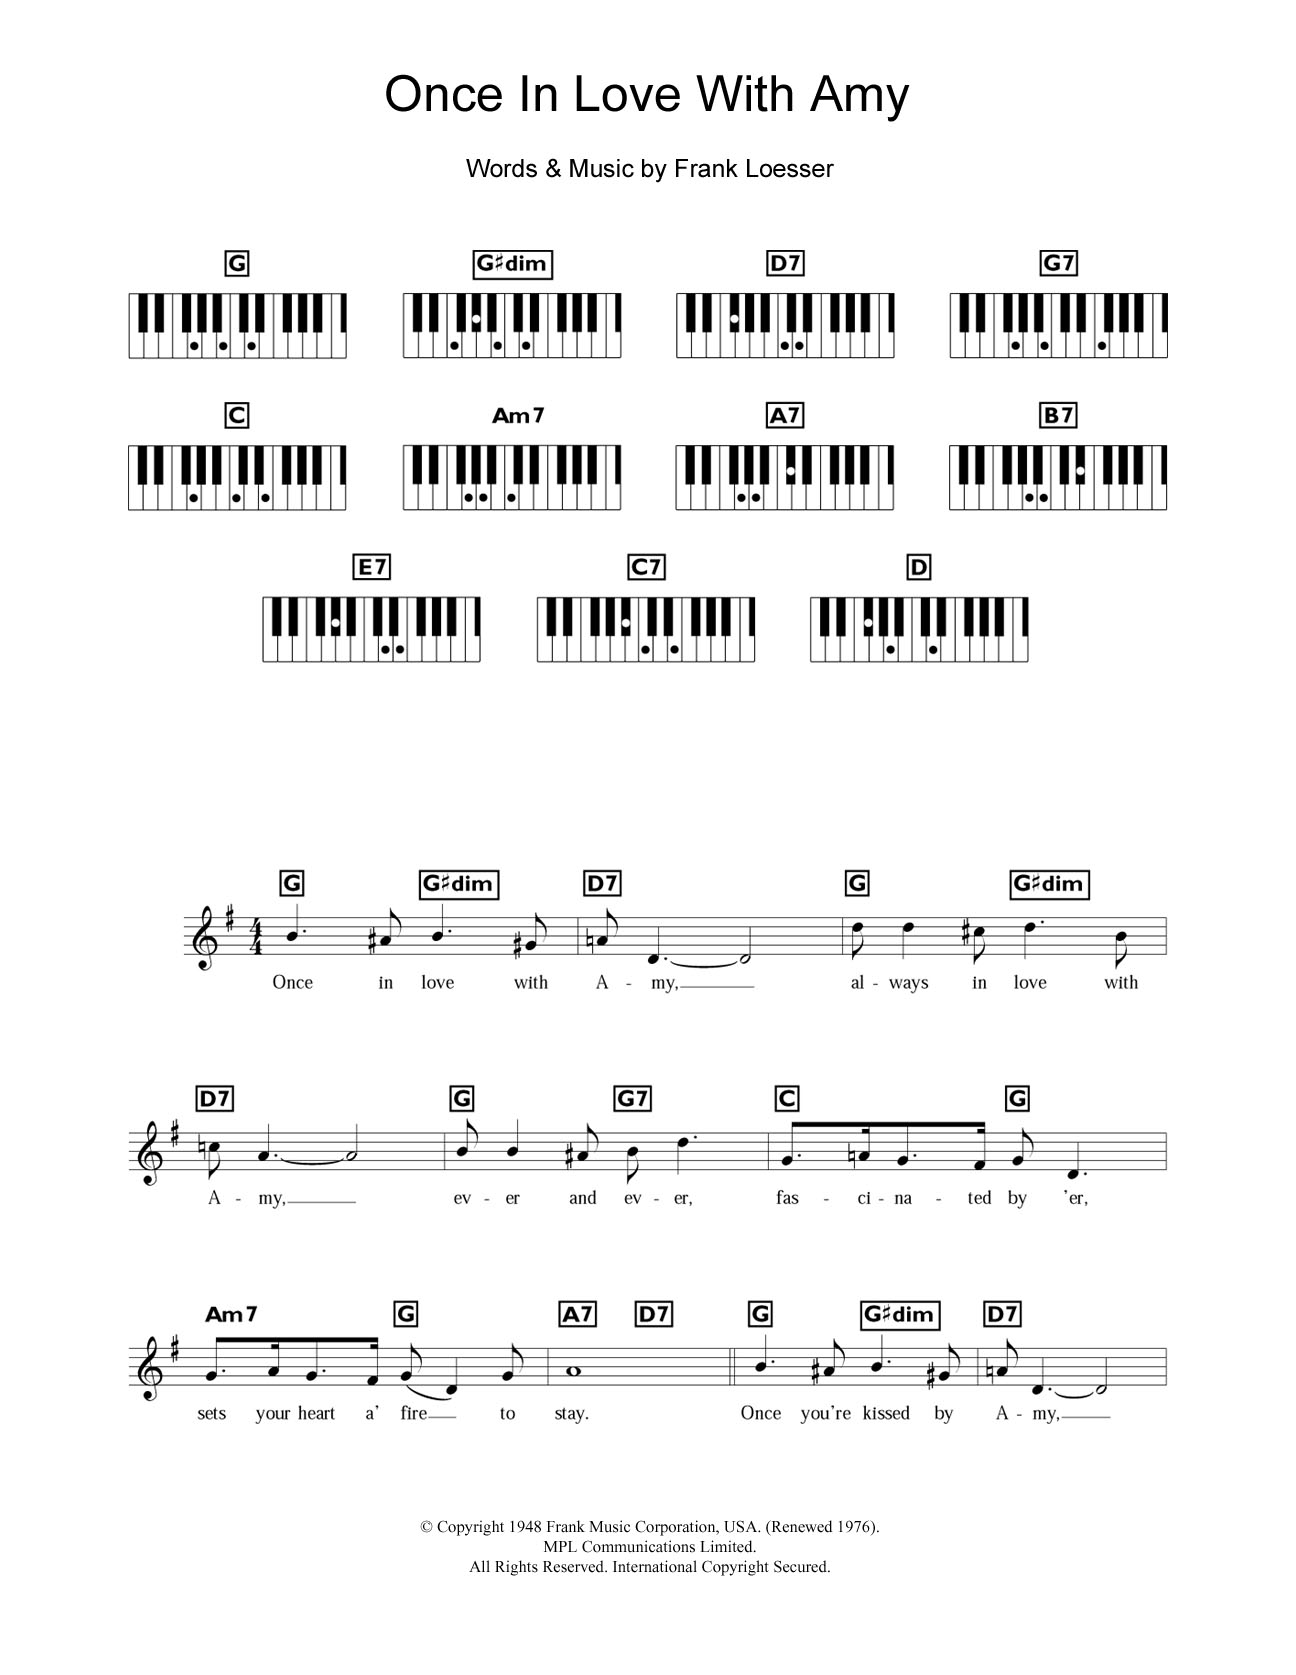 Once In Love With Amy (from Where's Charley?) Sheet Music